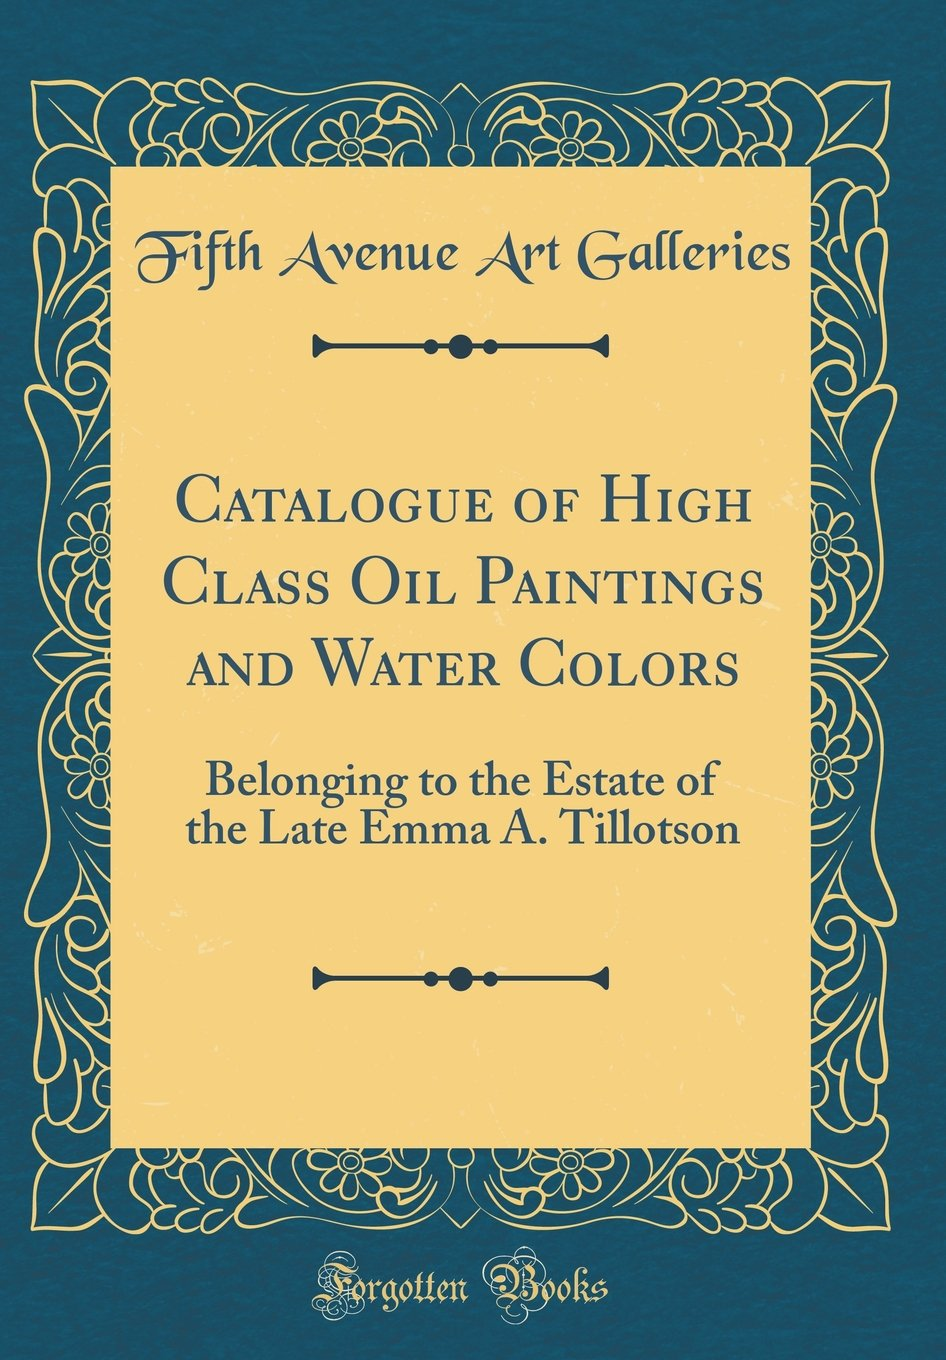 Read Online Catalogue of High Class Oil Paintings and Water Colors: Belonging to the Estate of the Late Emma A. Tillotson (Classic Reprint) ebook